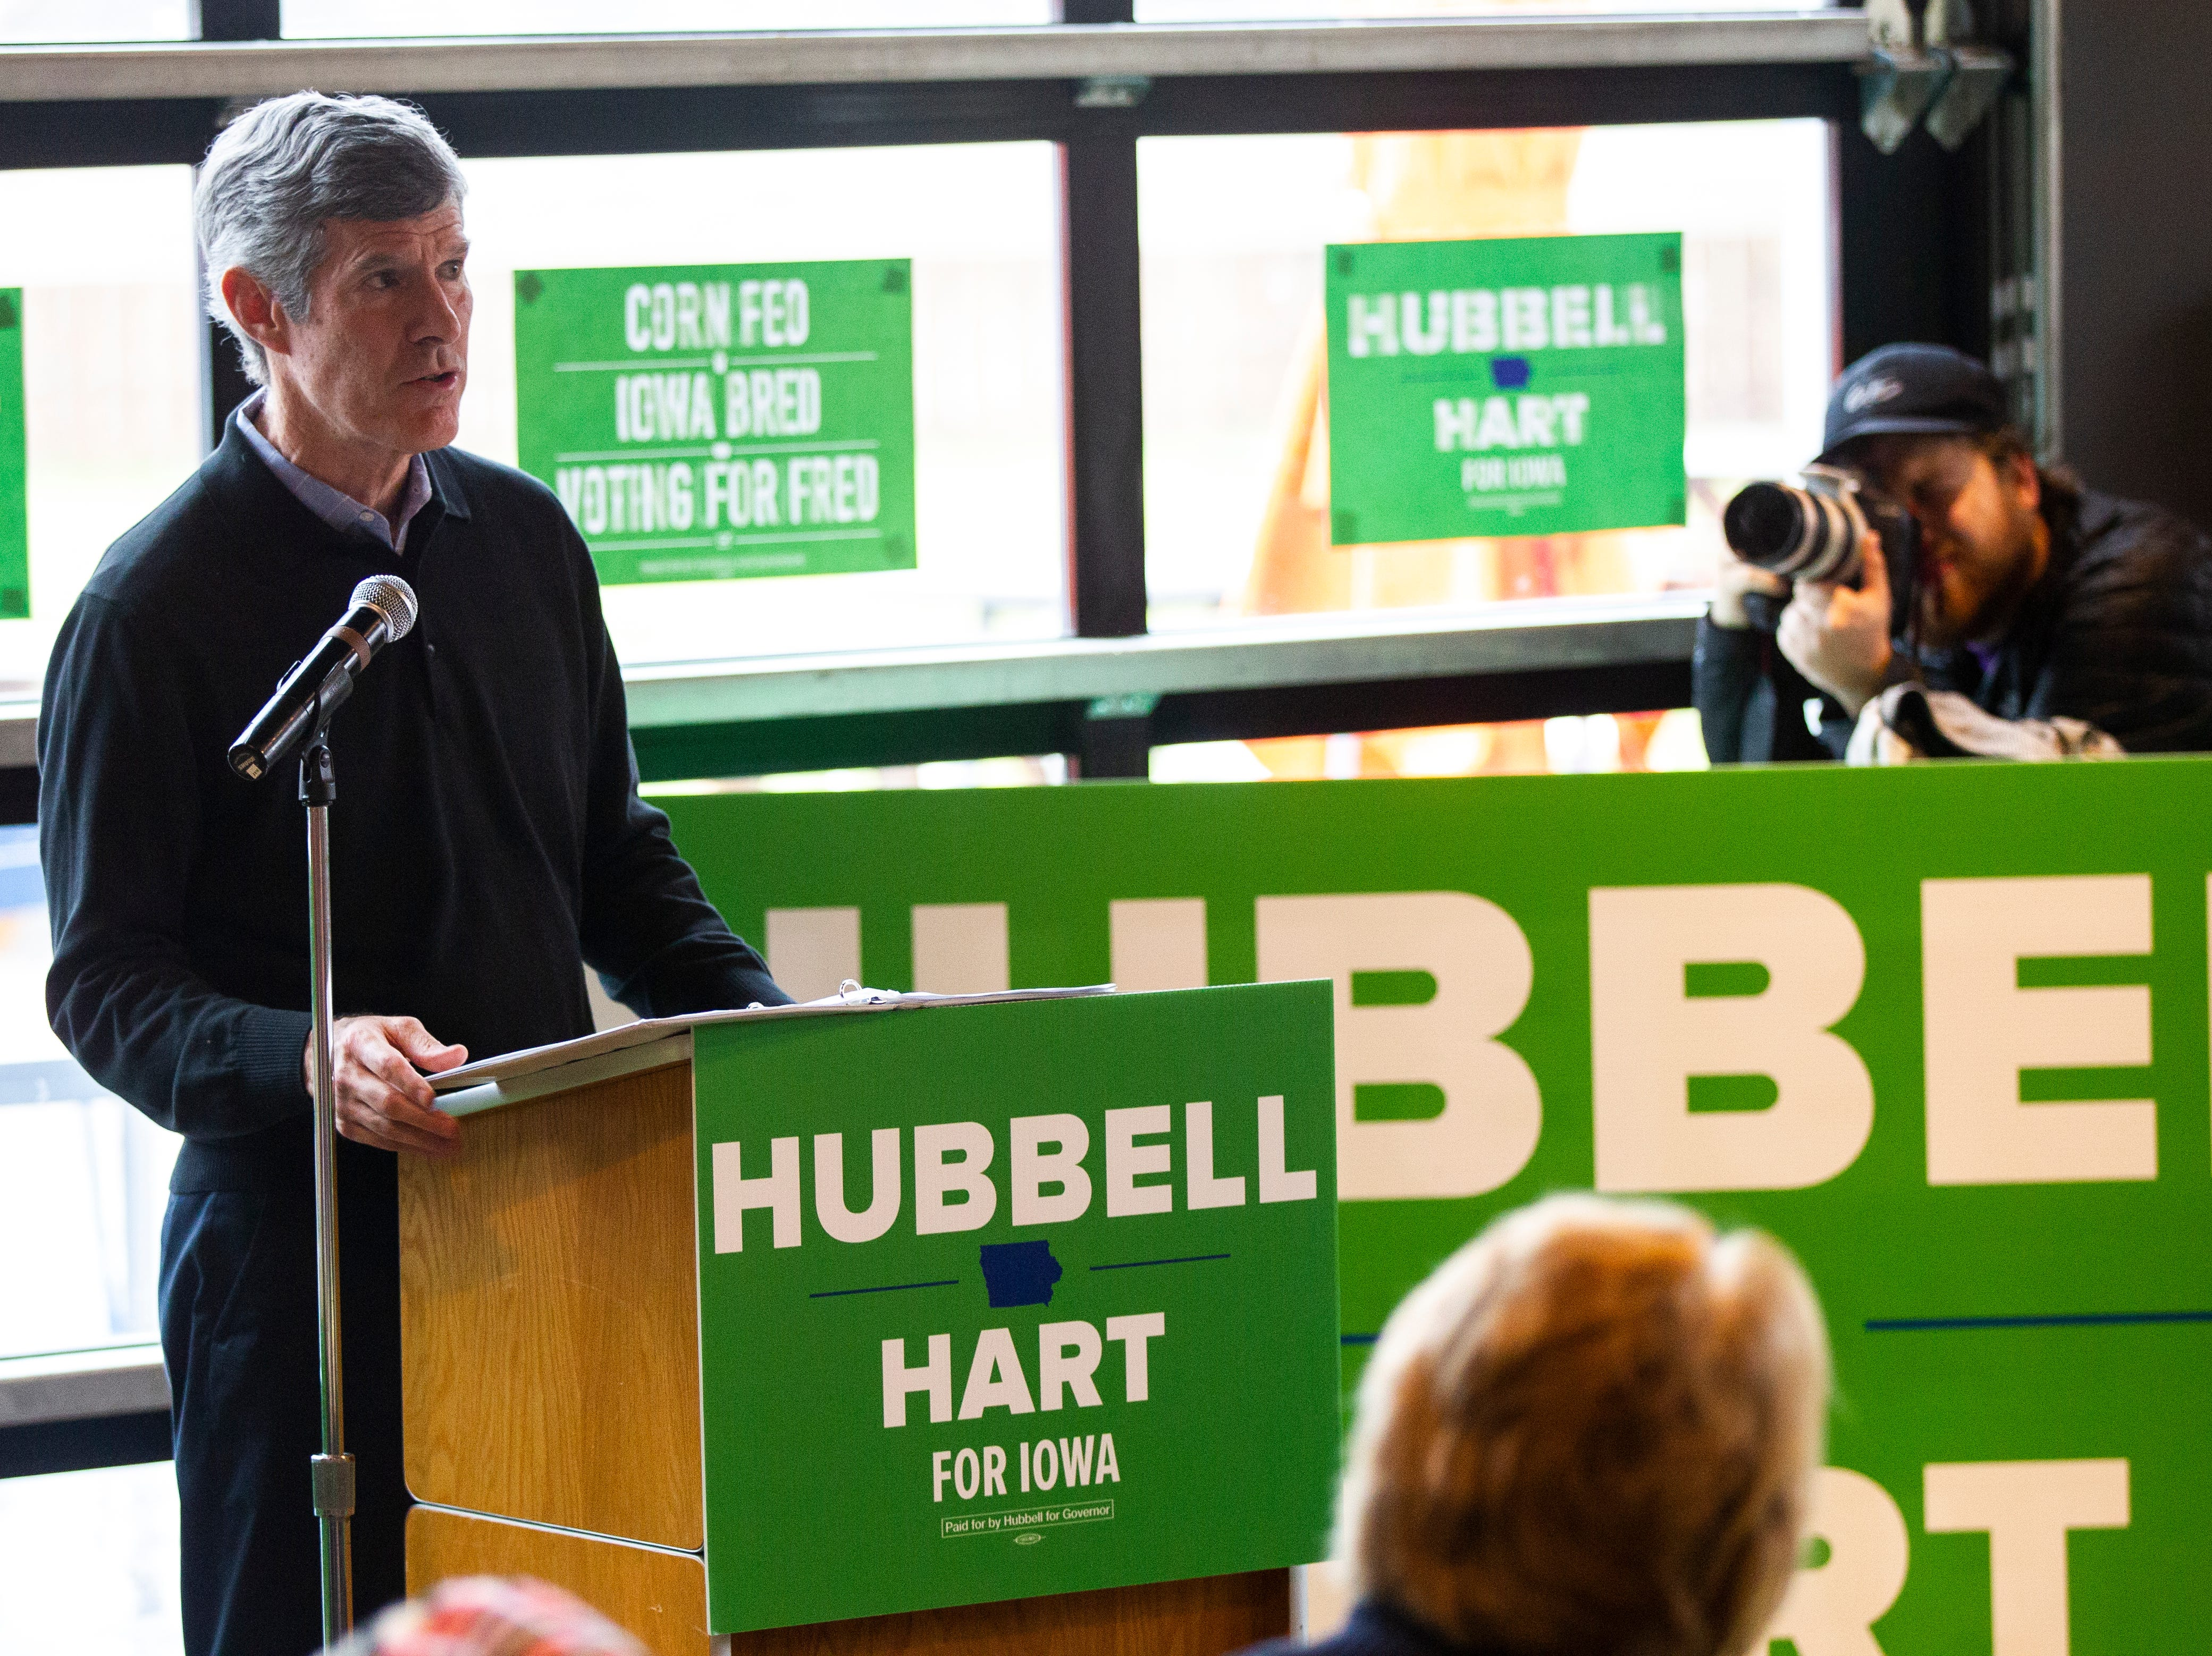 Fred Hubbell, Iowa Democratic candidate for governor, speaks during a rally on Sunday, Nov. 4, 2018, at Big Grove Brewery in Iowa City.